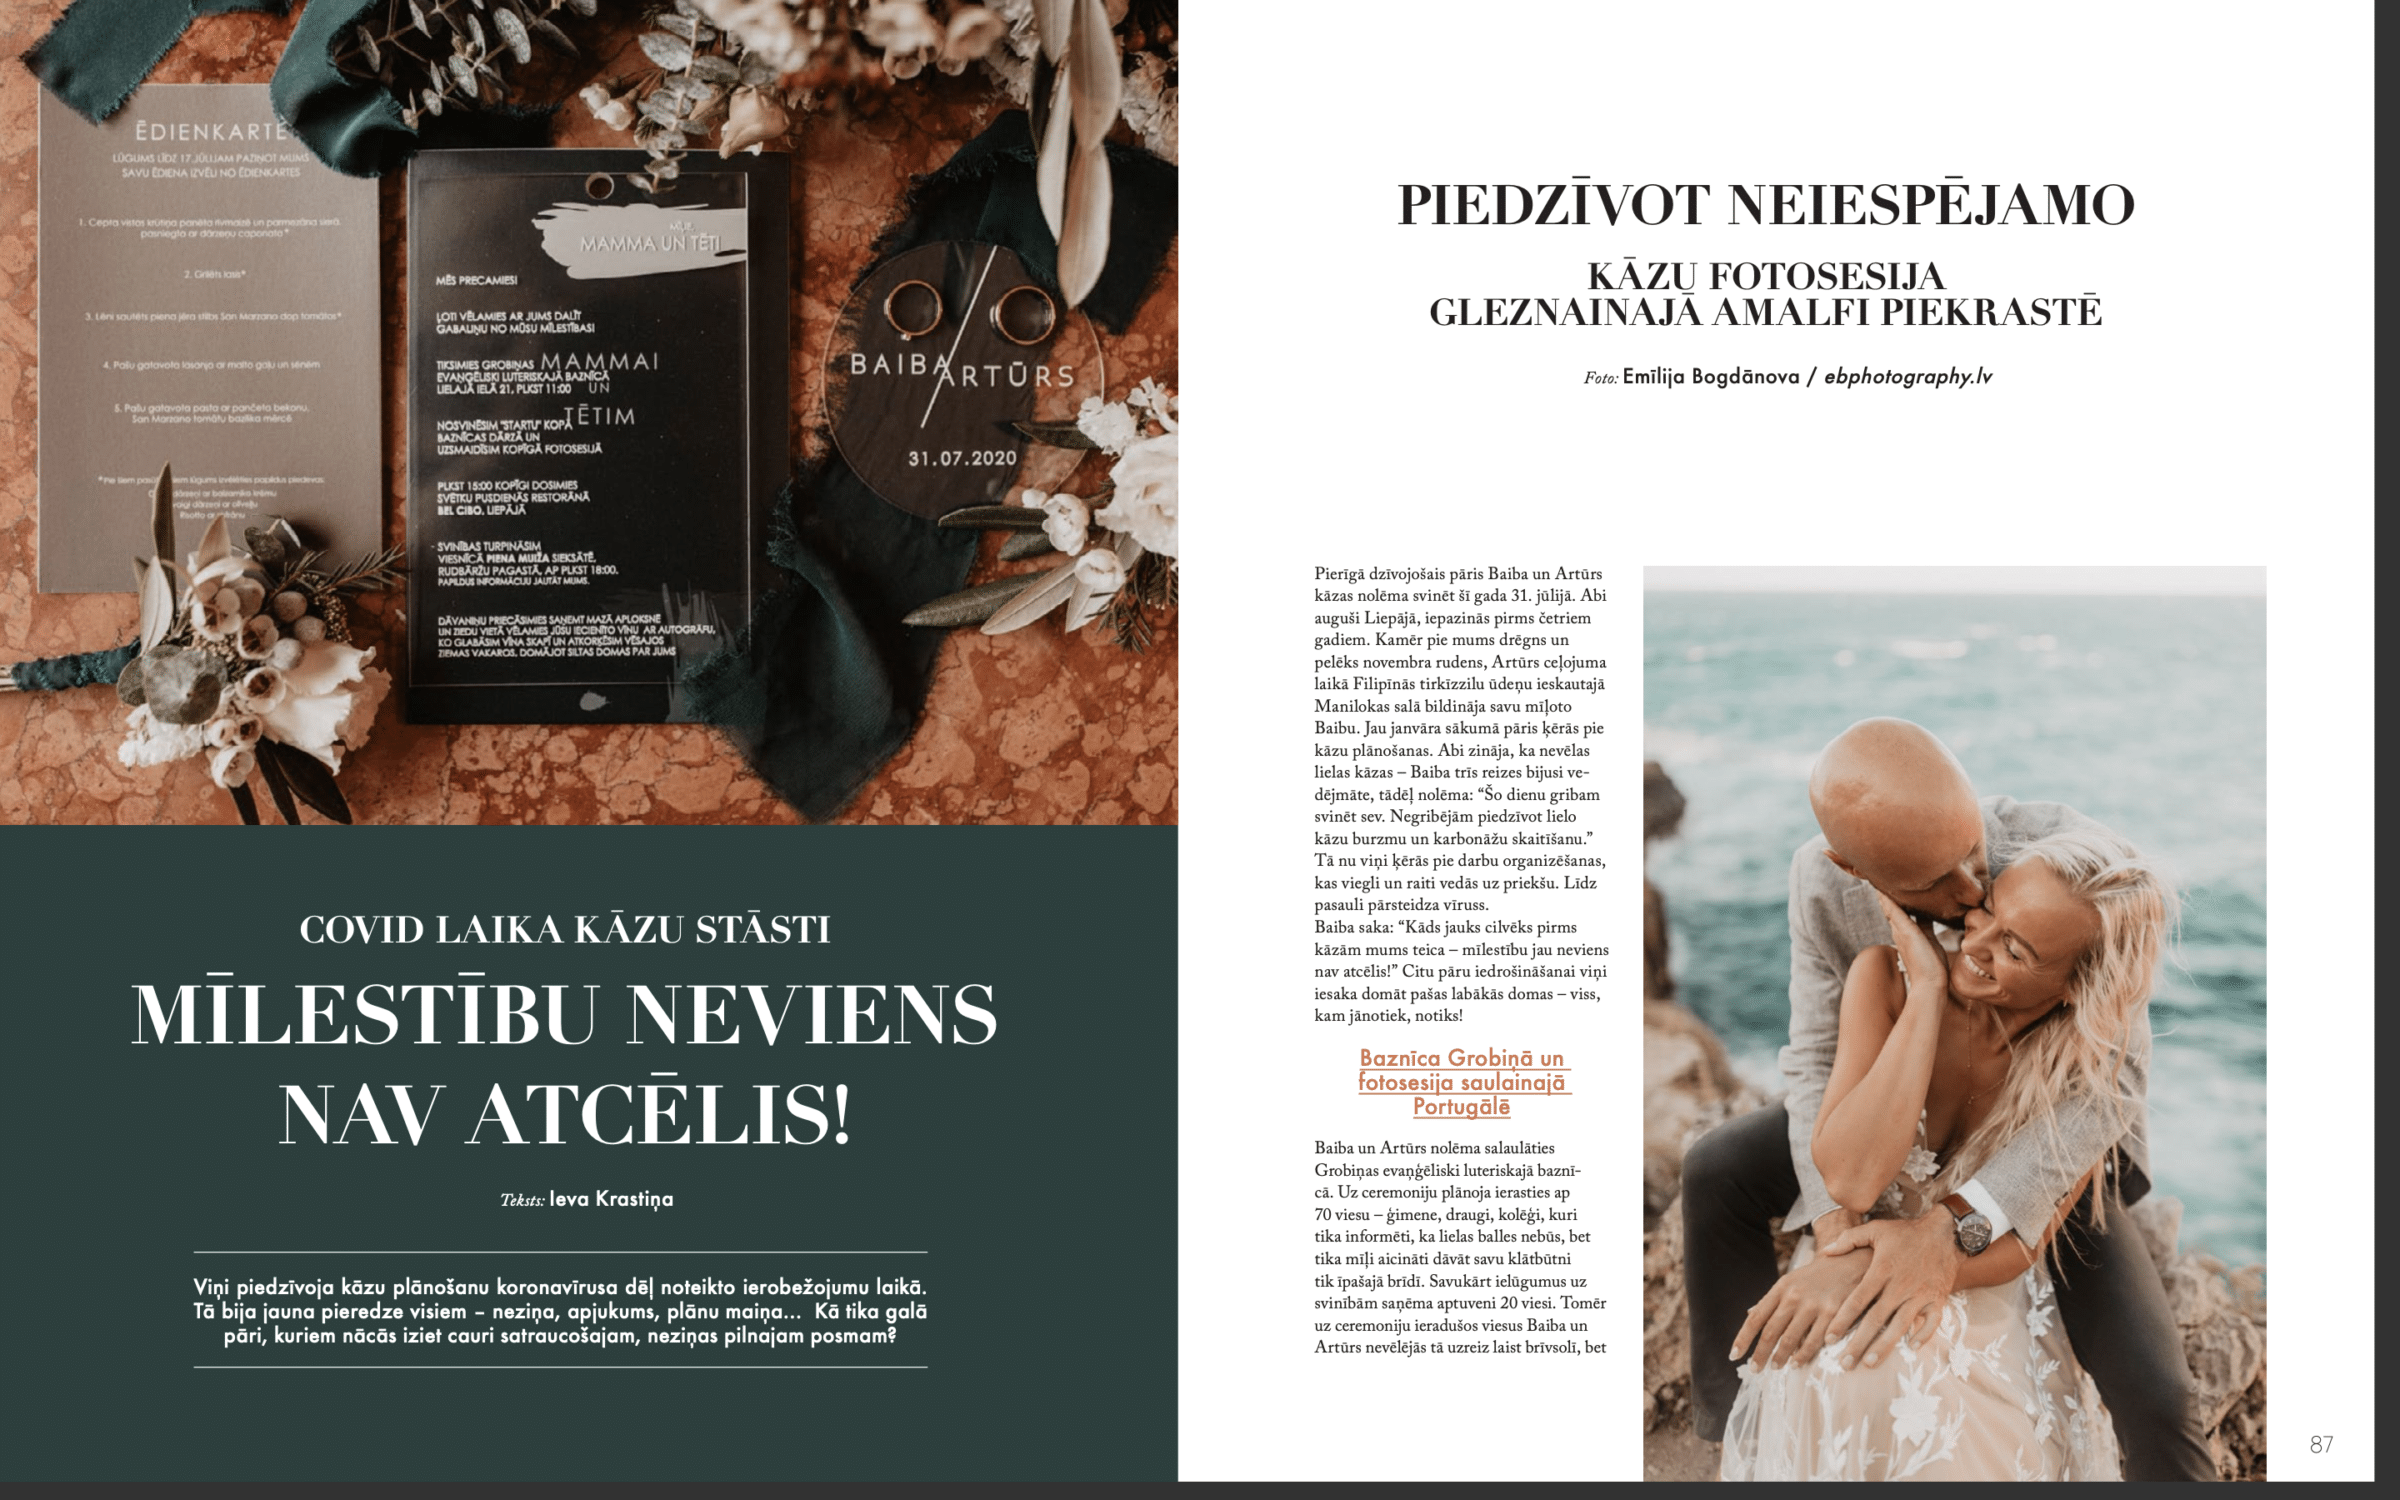 Wedding Story of Amelii Bride in LĪGAVĀM Magazine issue No. 9